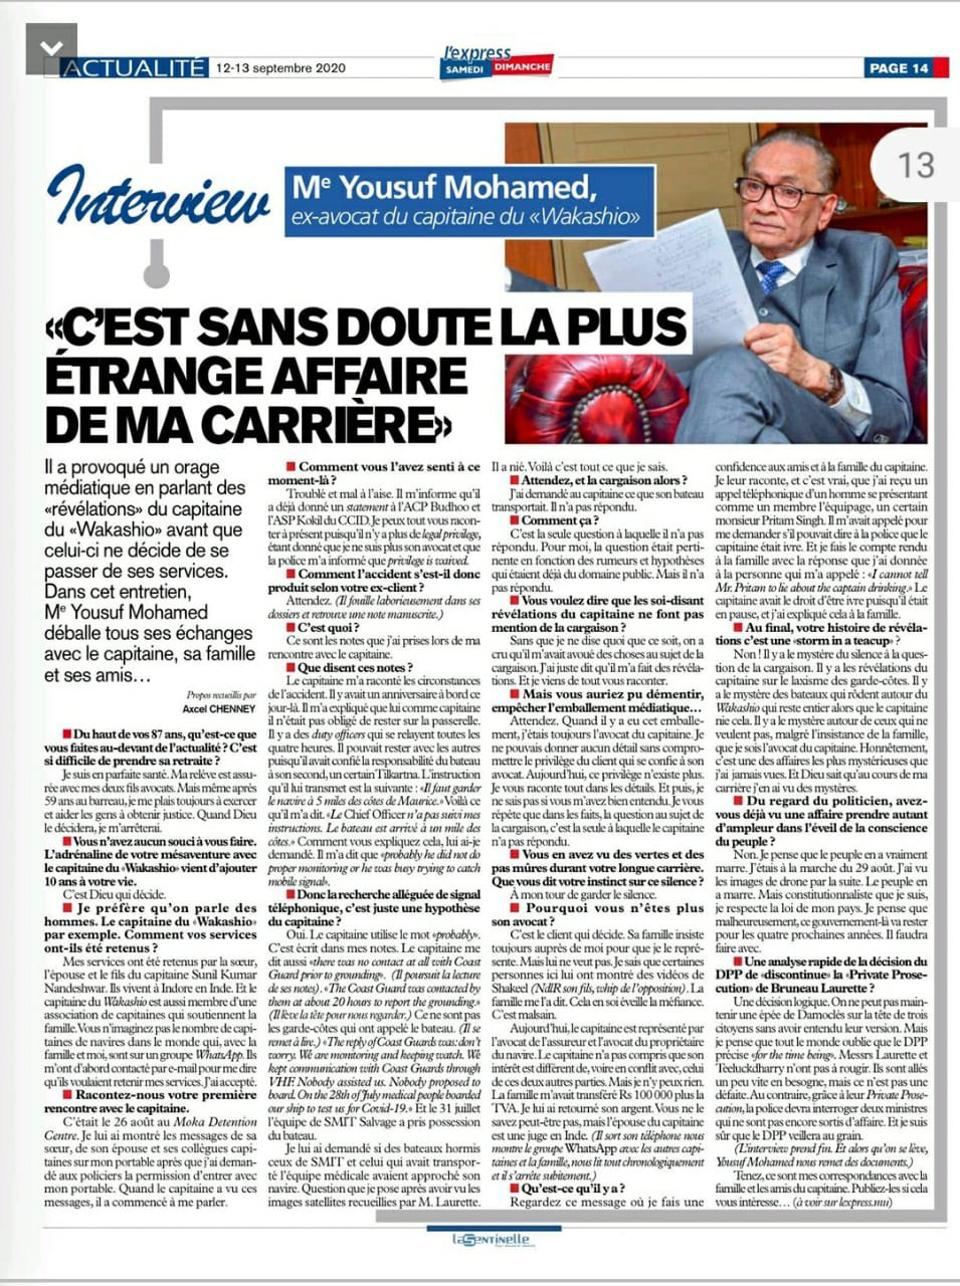 The 12 September Interview in the largest Mauritian newspaper, L'Express, contained explosive details about how Mr Mohamed was ejected from the case in preference for lawyers appointed by the insurer and shipowner.